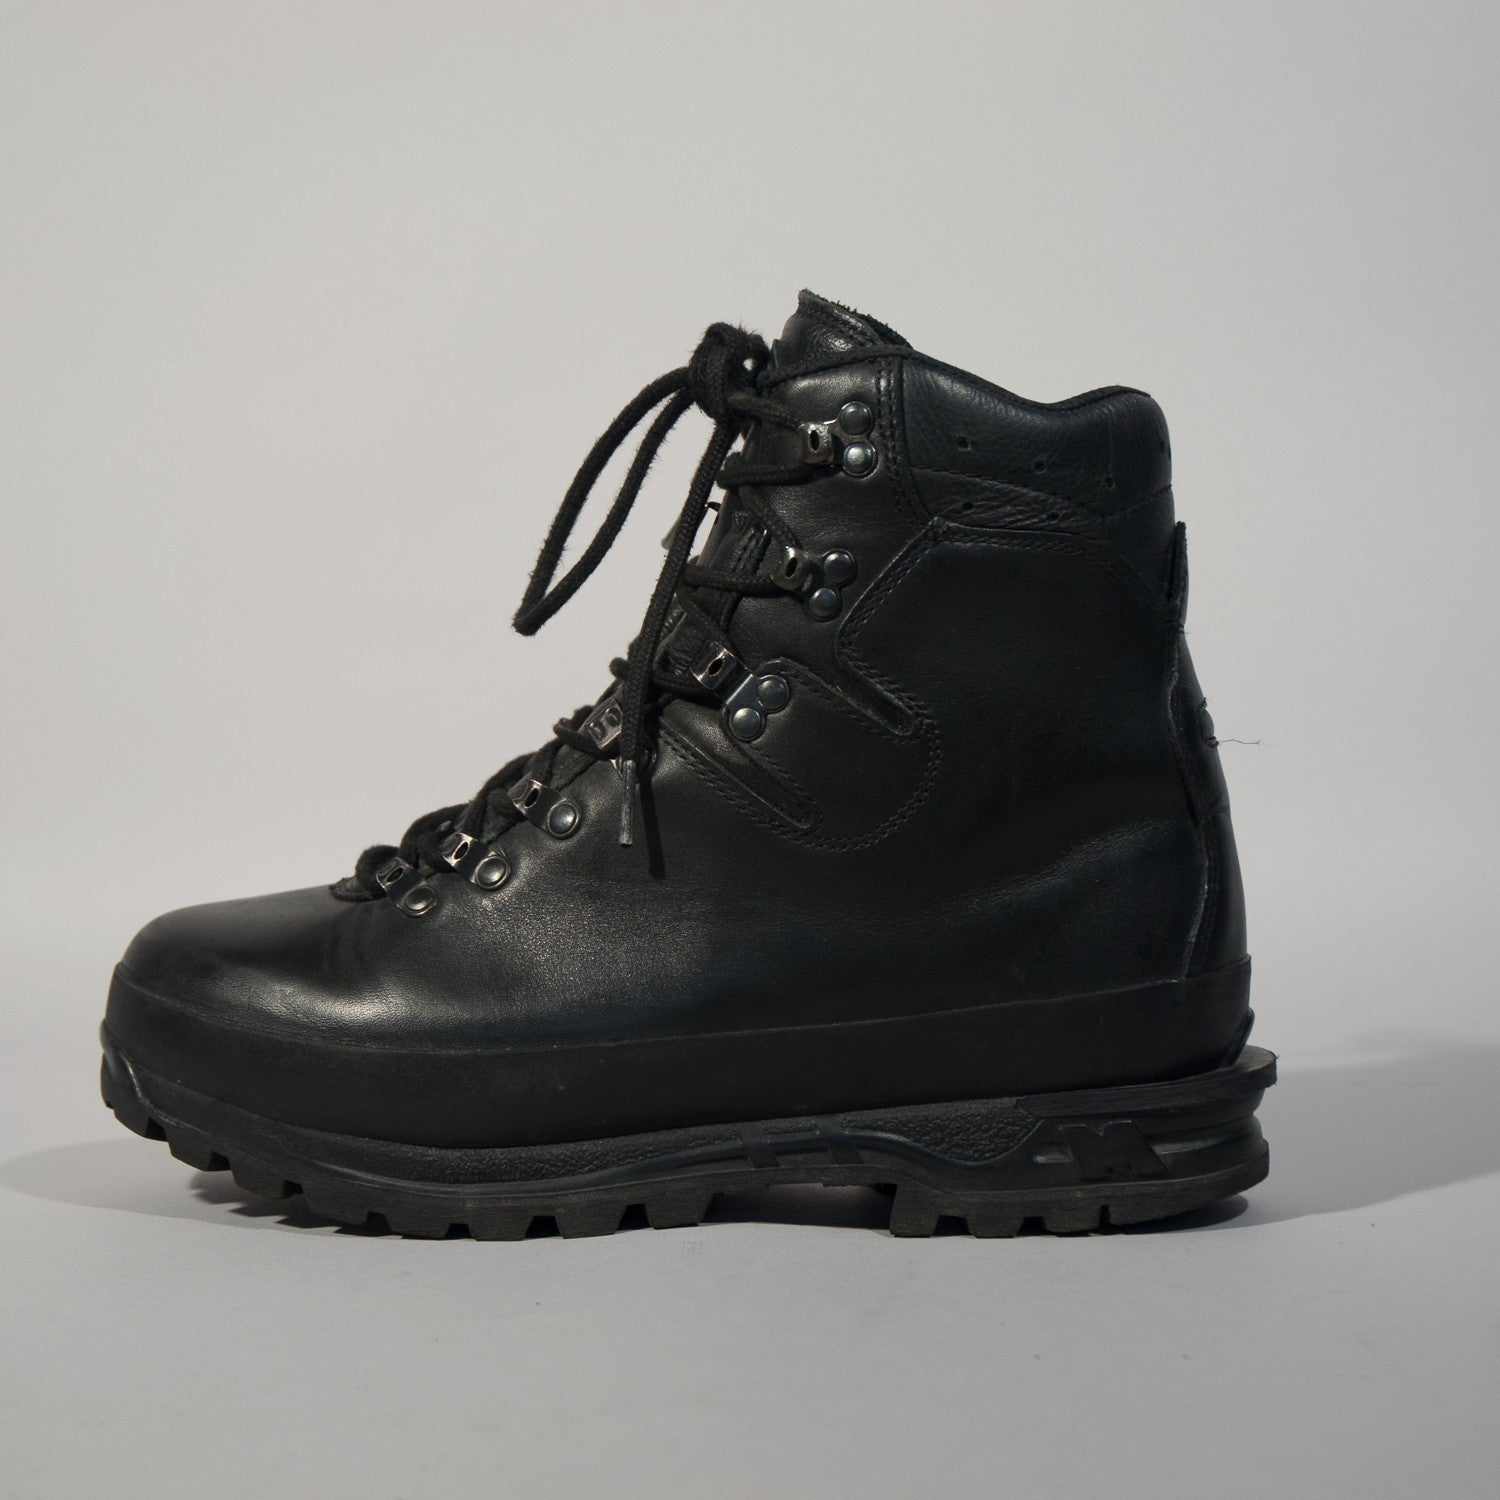 Meindl Hiking Boots Military As Used By The German Army